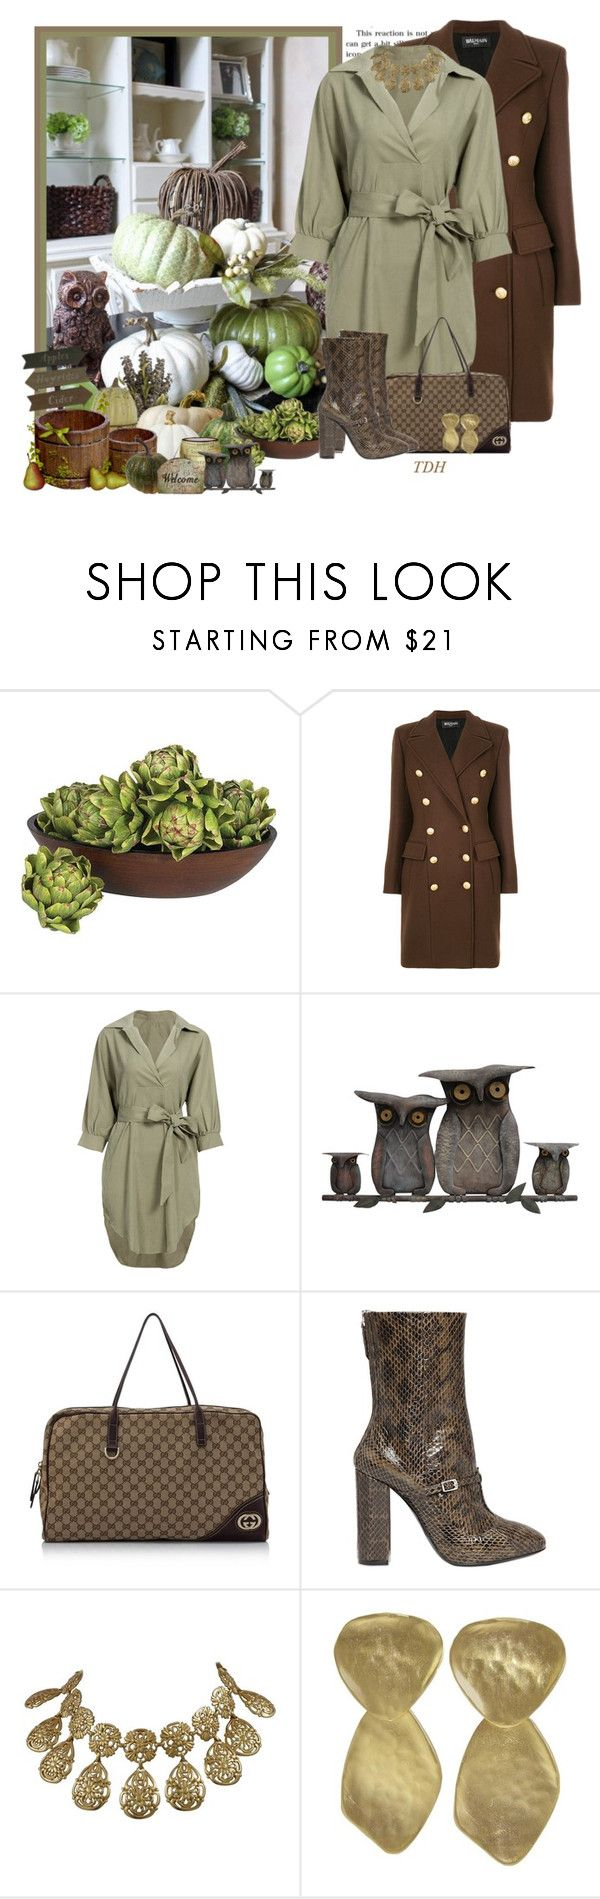 """Balmain Coat"" by talvadh ❤ liked on Polyvore featuring Once Upon a Time, Nearly Natural, Balmain, WALL, Gucci, N°21, Kenneth Jay Lane, Boots, shirtdress and balmain"